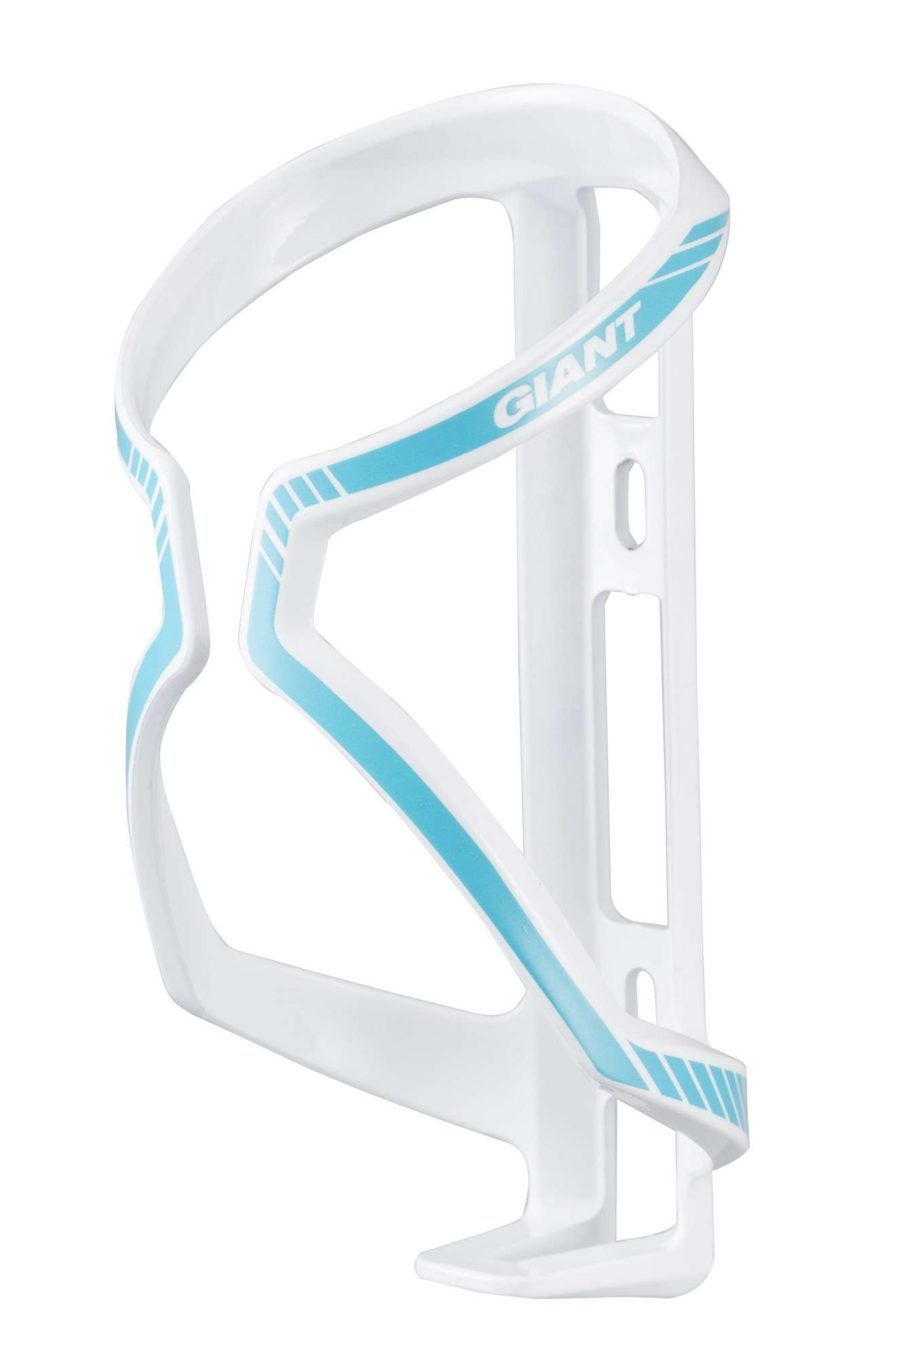 Giant Airway Sport Bottle Cage White-Blue